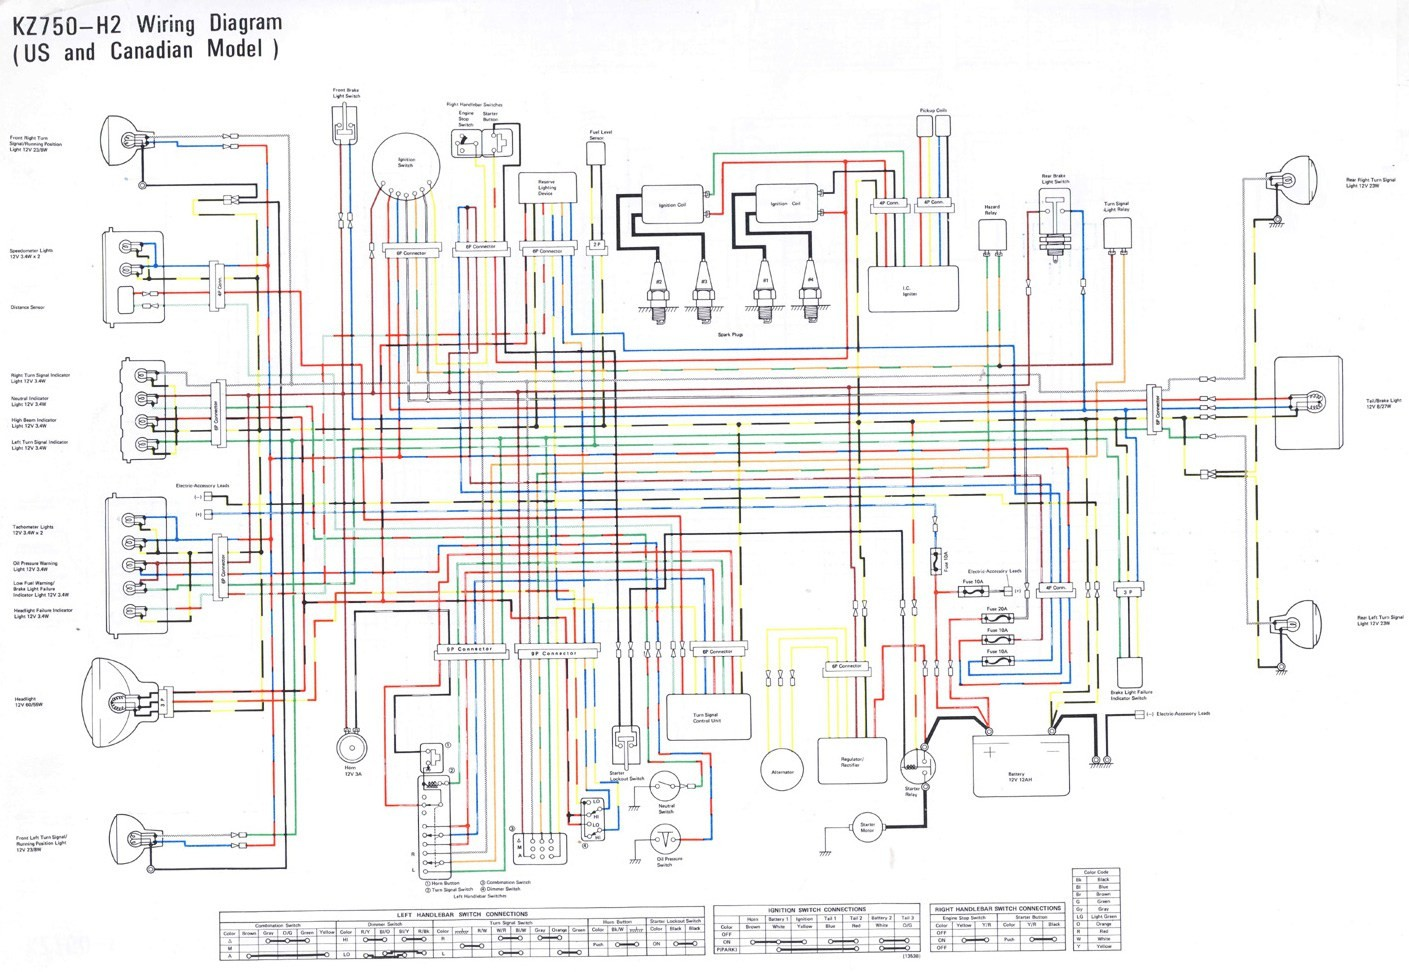 John Deere 345 Wiring Diagram Charging Schemes Lx277 Page 4 And Schematics Electrical Problems